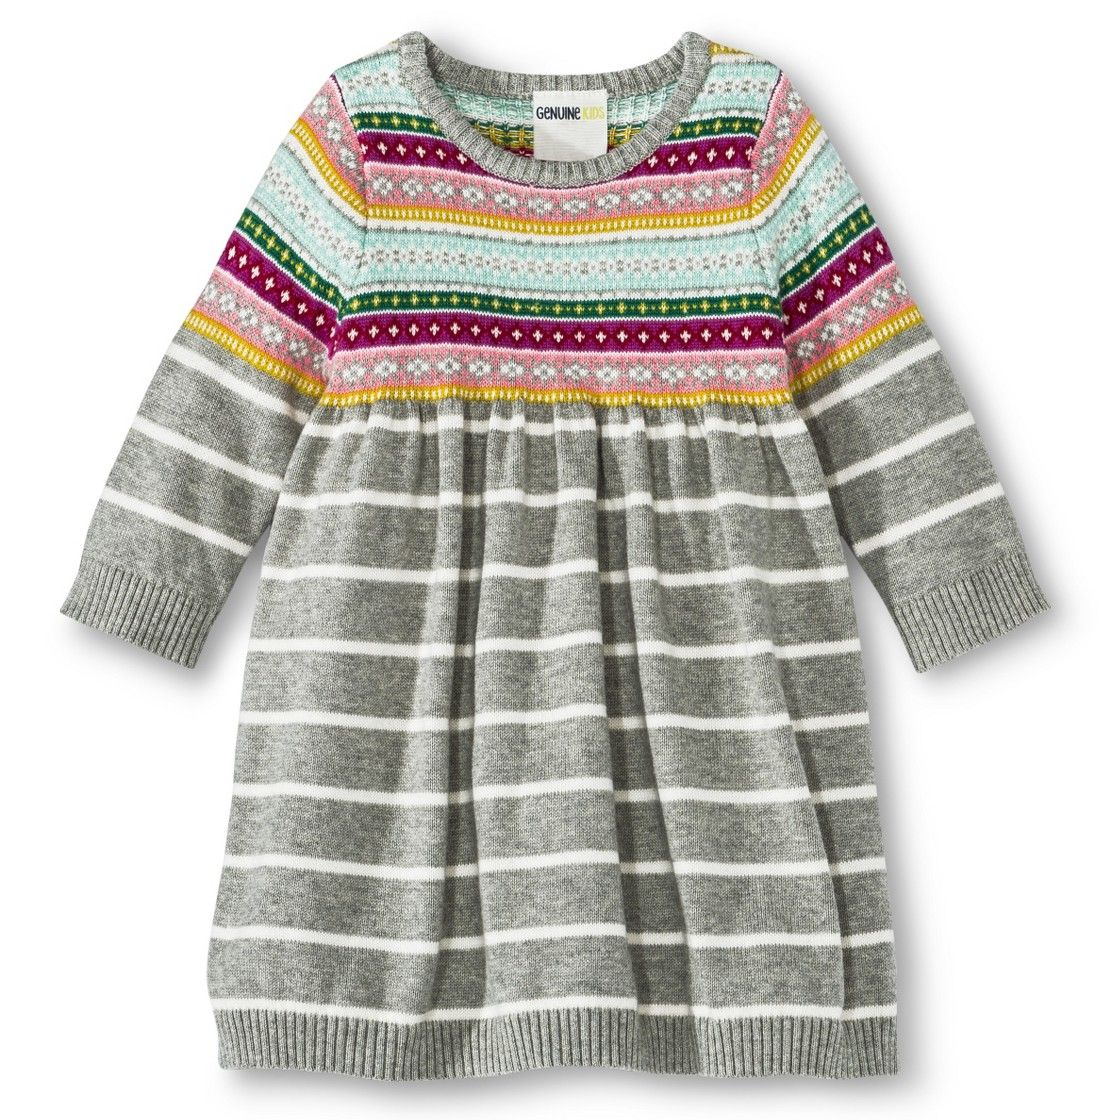 Infant Toddler Girls' Fair Isle Sweater Dress | Liv And Elsa style ...